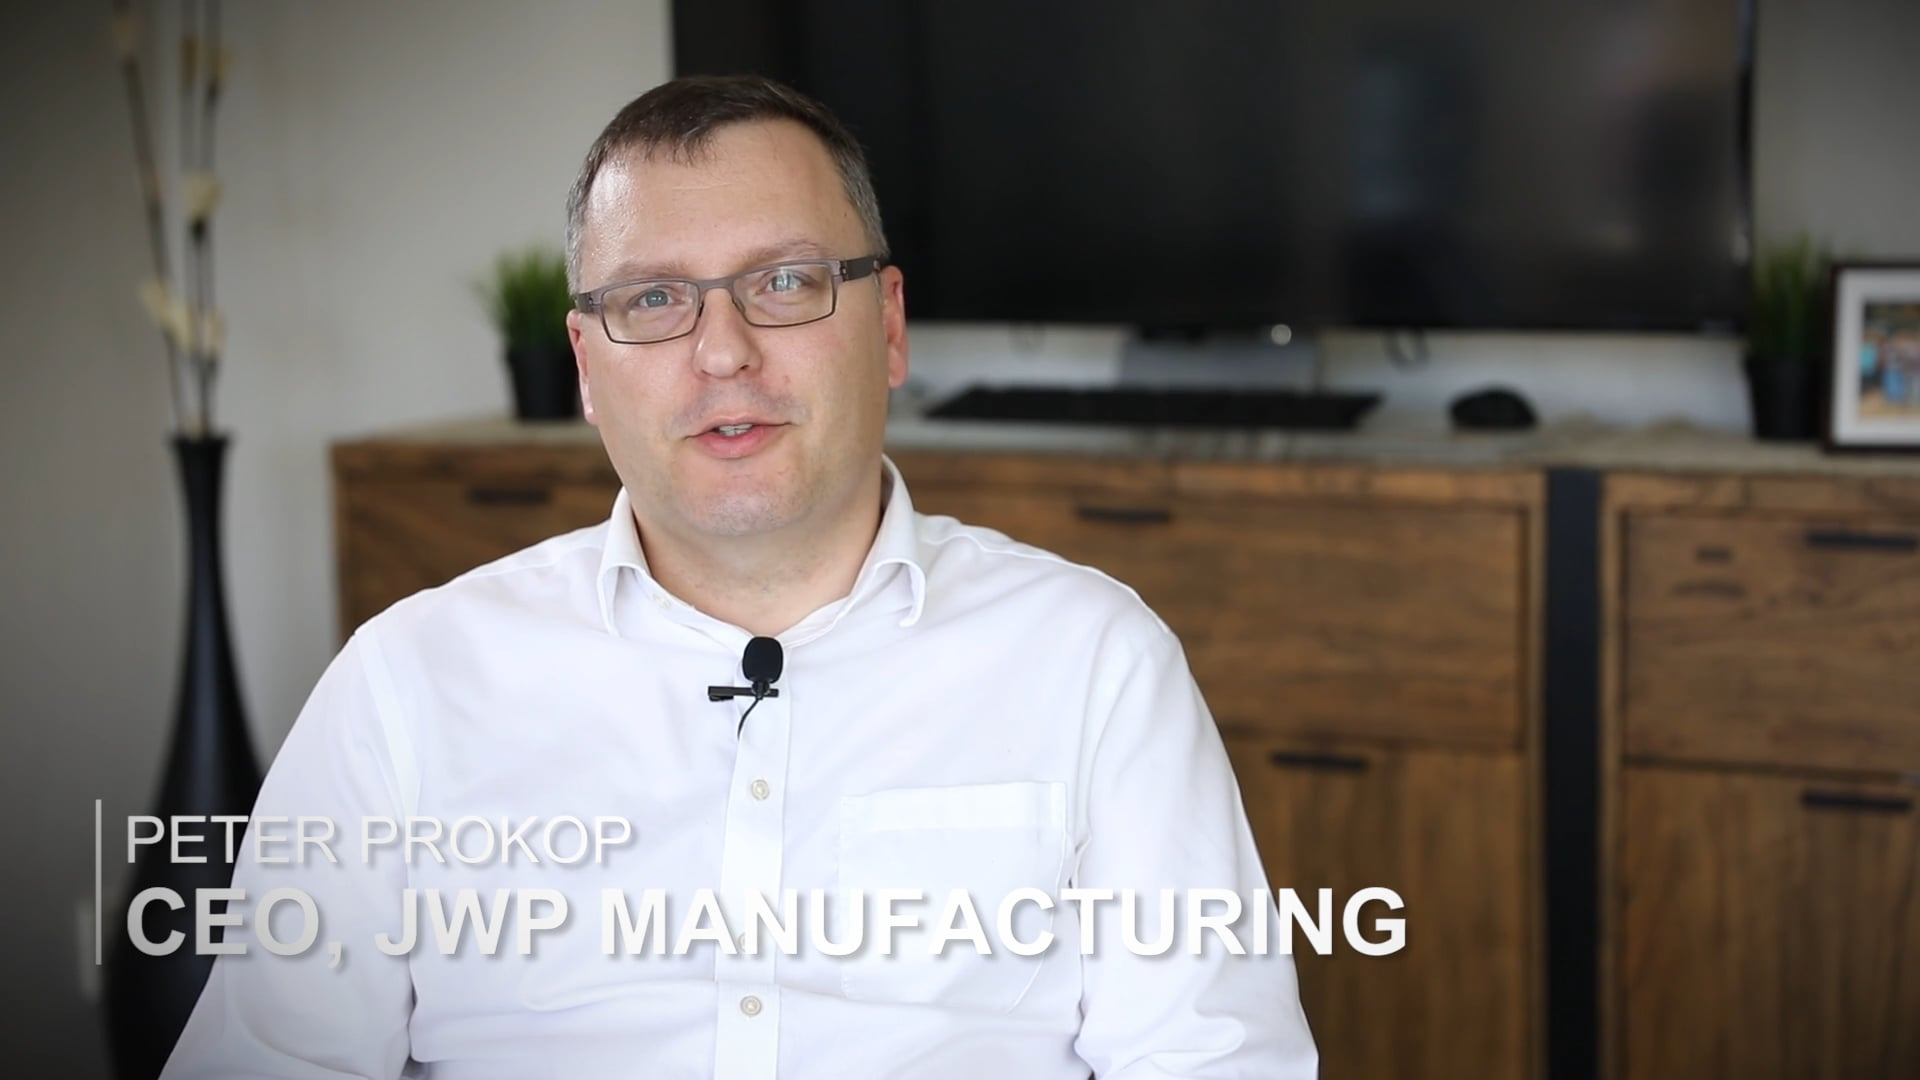 Peter Prokup CEO of JWP Manufacturing Interview